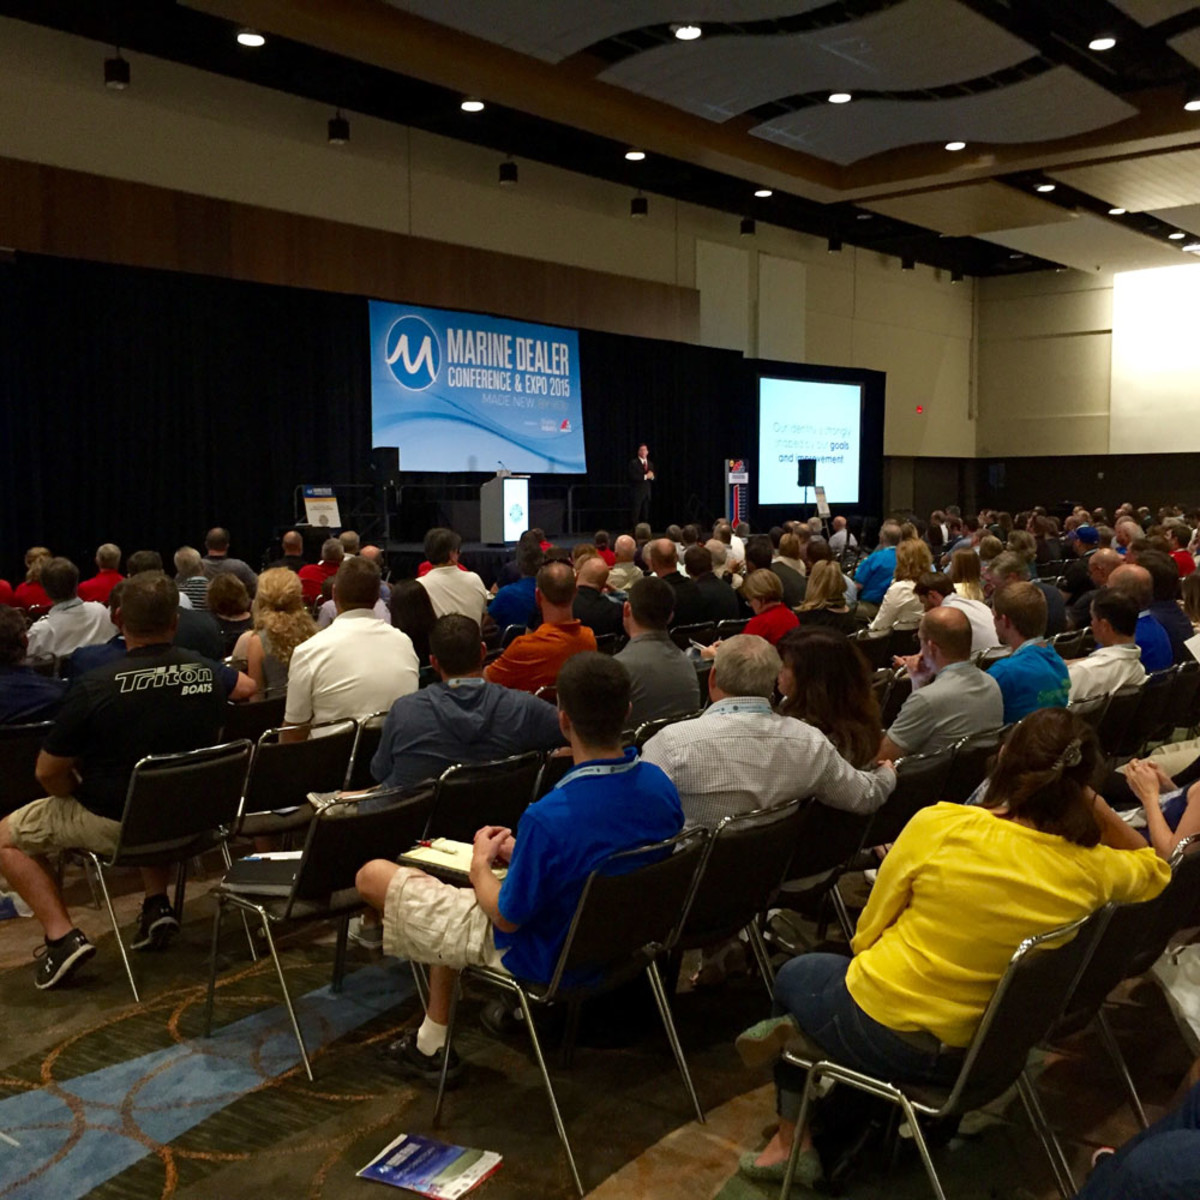 About 1,200 conferees attended McClatchy's keynote presentation.